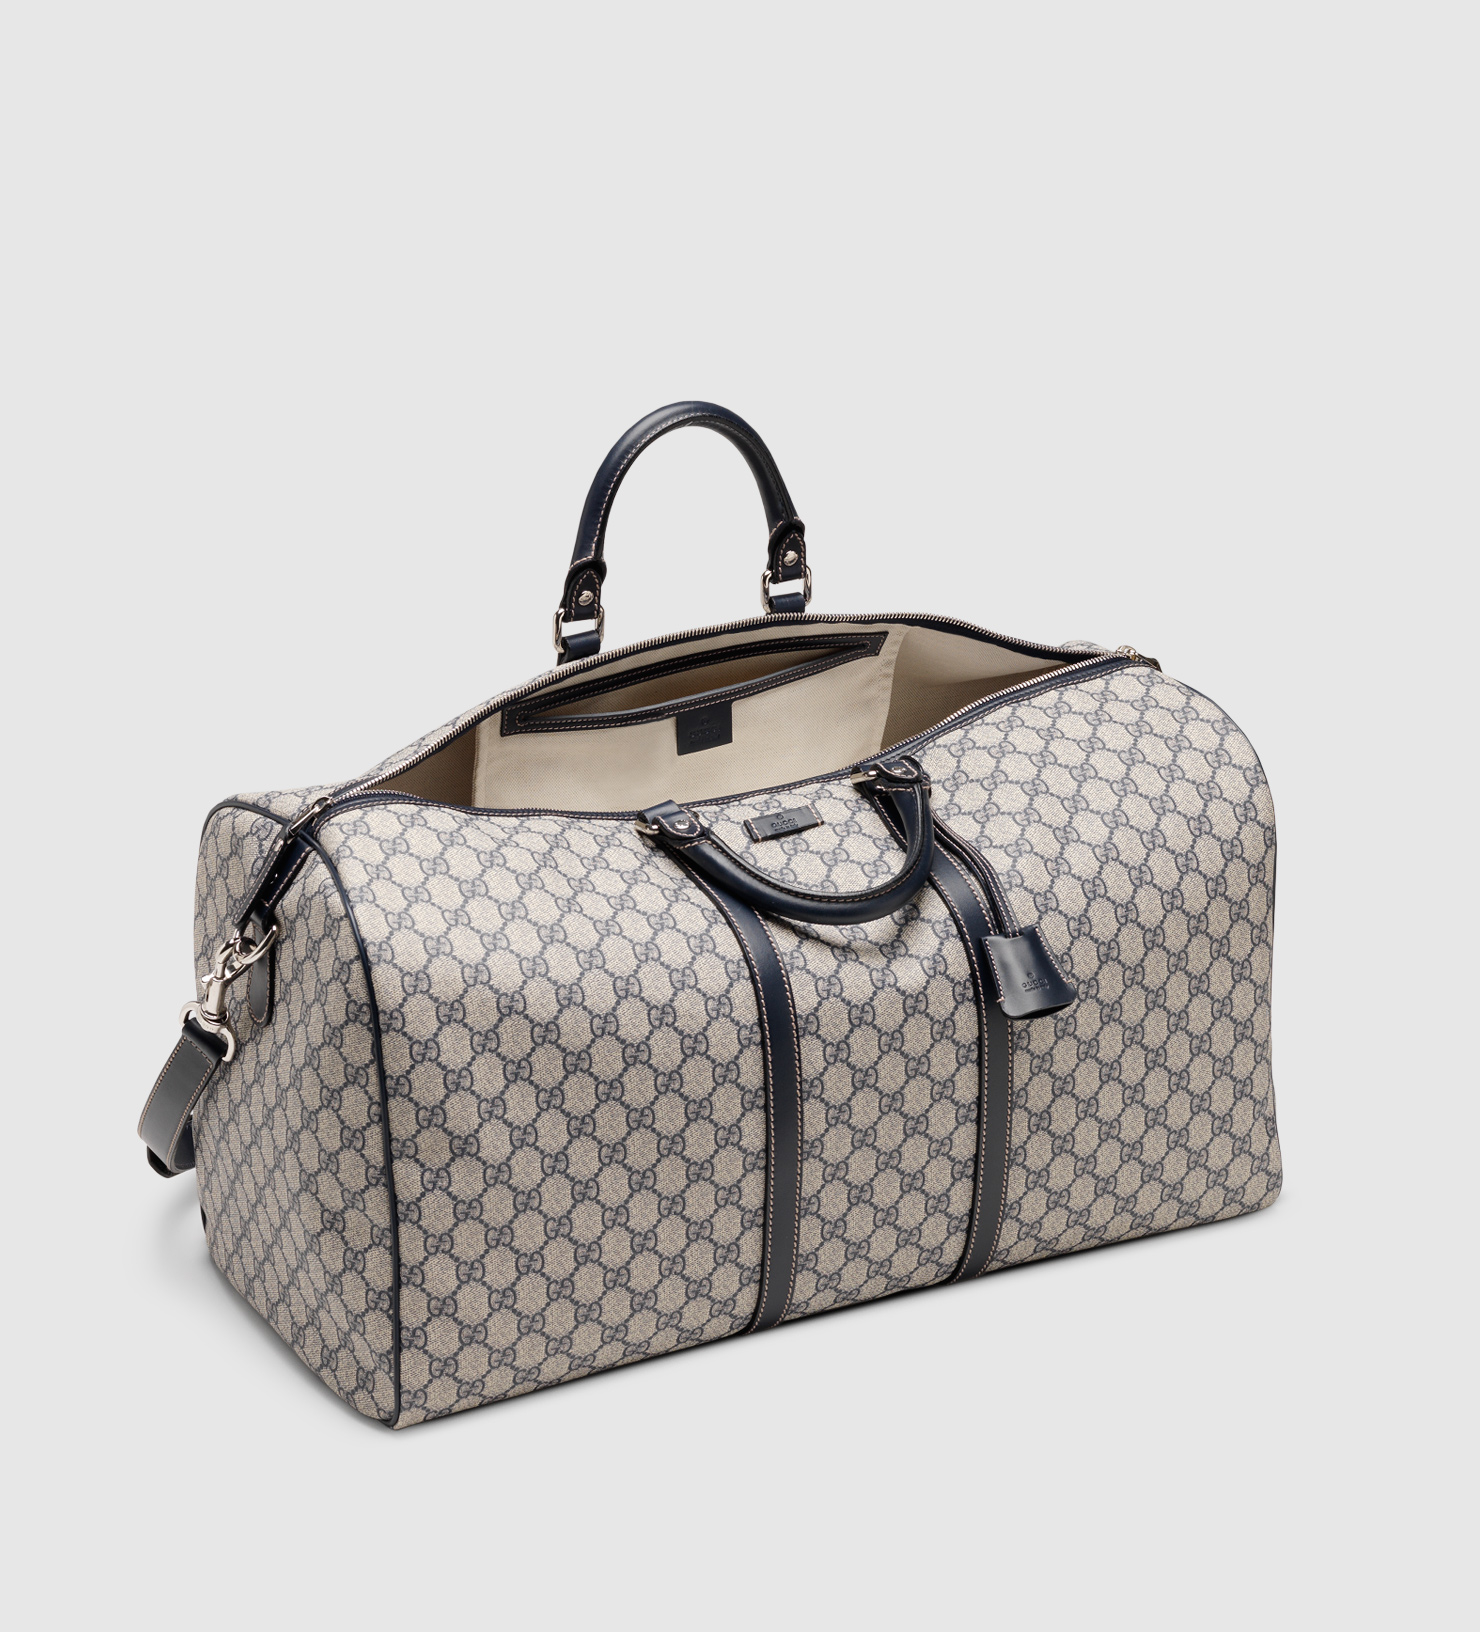 Gucci Large Carry On Duffle Bag In Gray